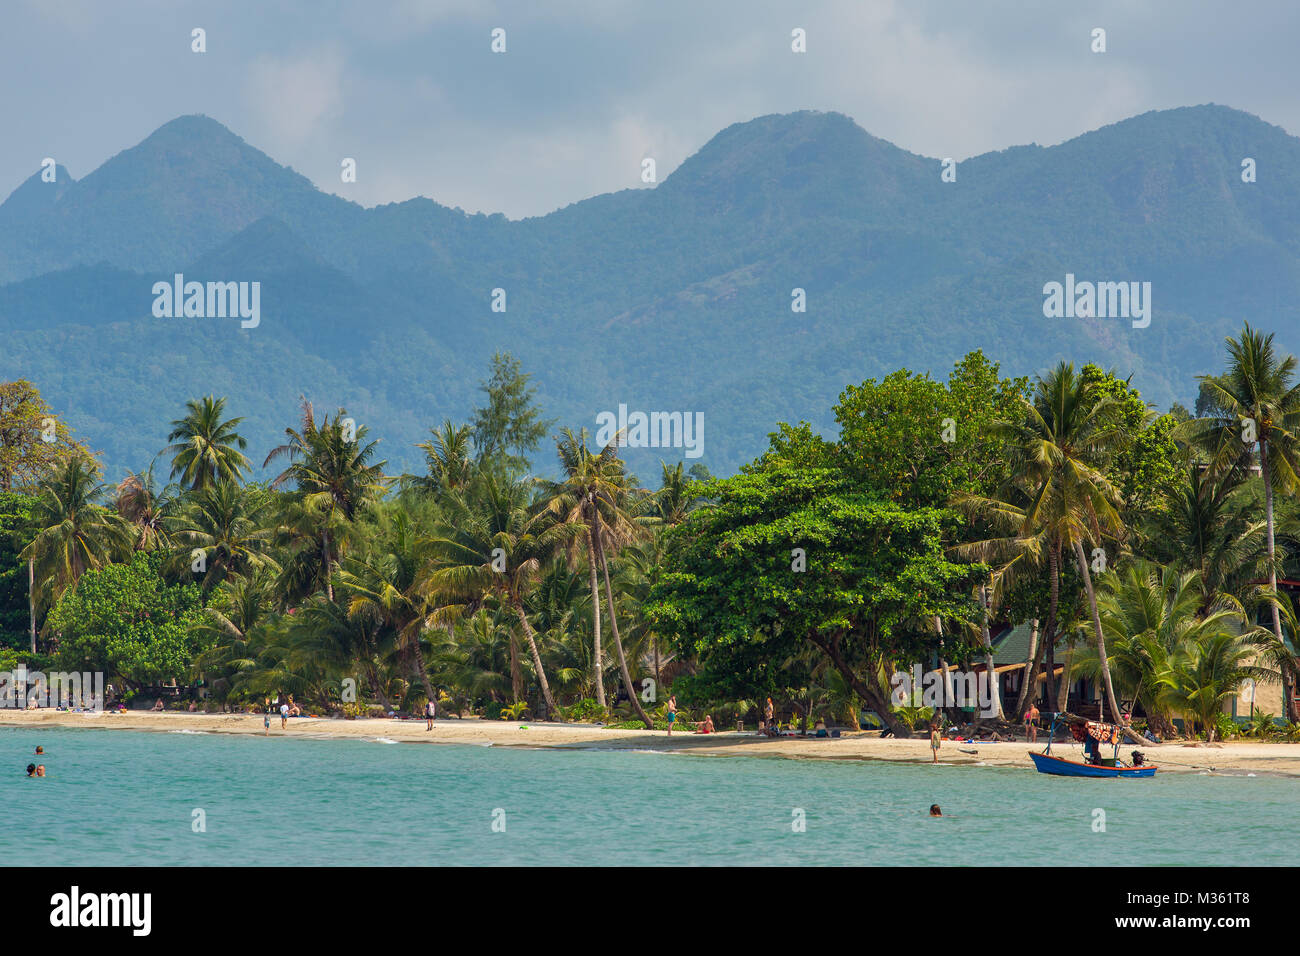 Koh Chang, Thailand - March 12, 2017: Tourists rest on the beautiful tropical beach on Koh Chang island in Thailand - Stock Image